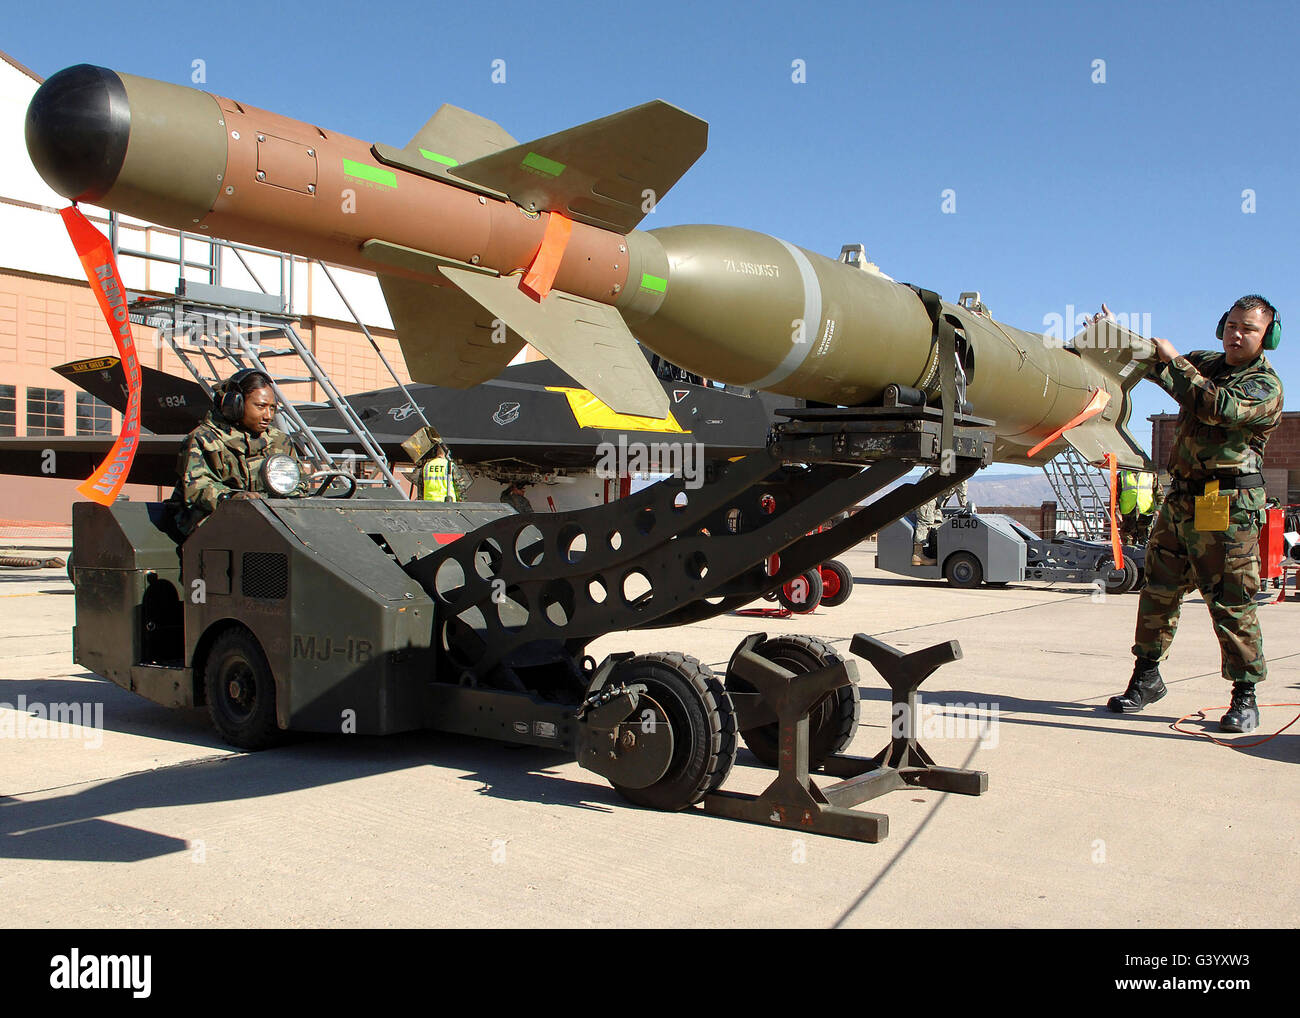 Airmen Move The Gbu 27 From Its Stand Stock Photo Alamy